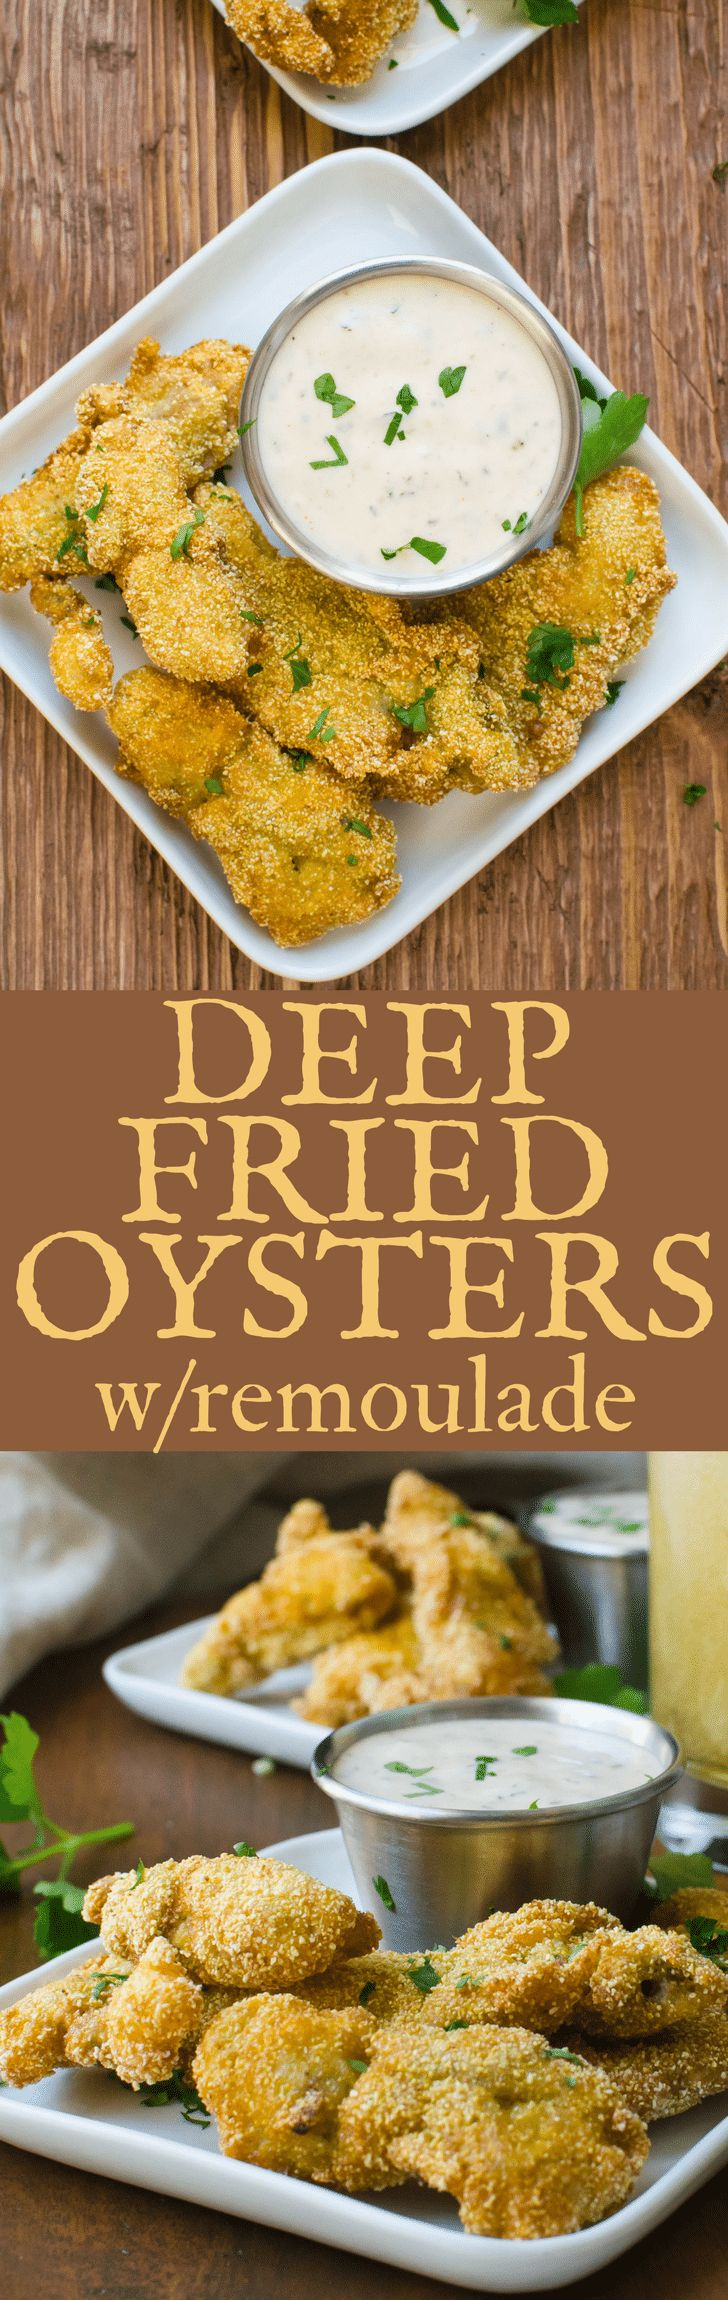 Deep Fried Oysters with Remoulade